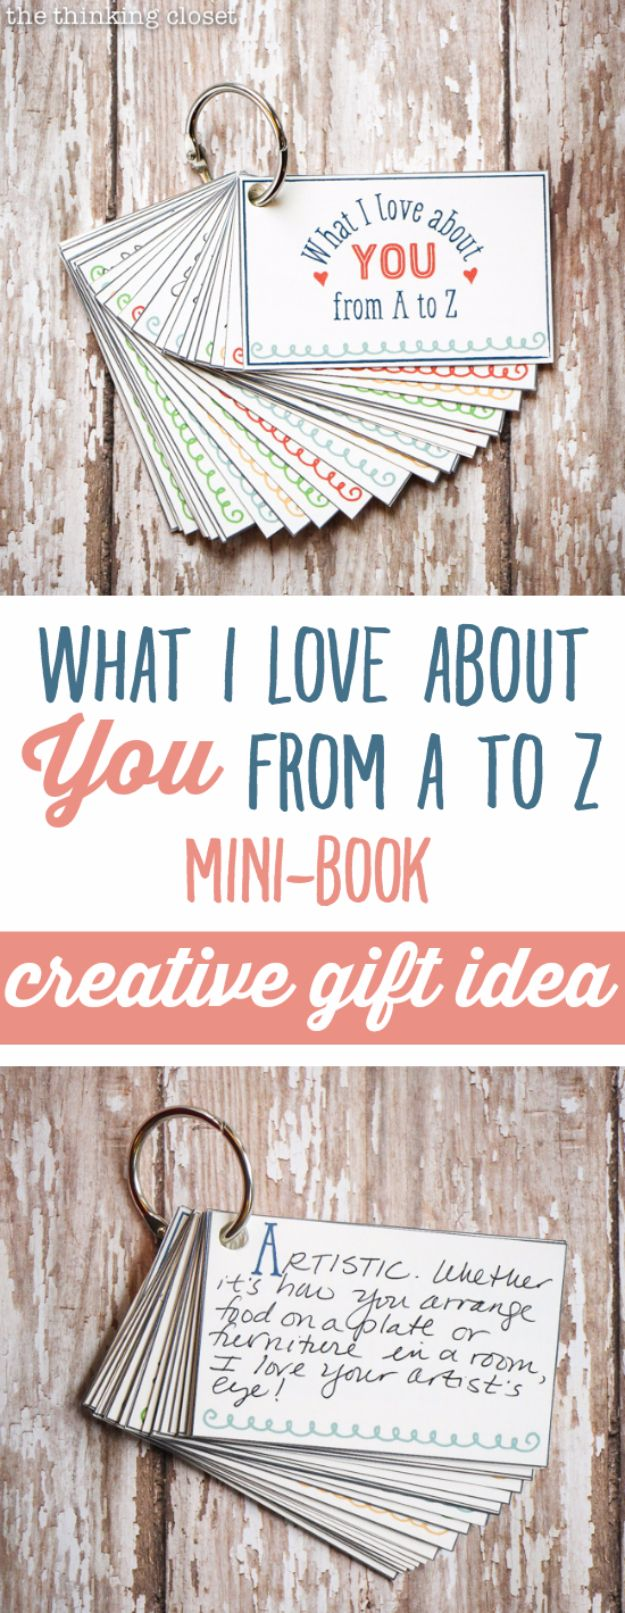 DIY Valentines Day Gifts for Him - What I Love About You From A To Z - Cool and Easy Things To Make for Your Husband, Boyfriend, Fiance - Creative and Cheap Do It Yourself Projects to Give Your Man - Ideas Guys Love These Ideas for Car, Yard, Home and Garage - Make, Don't Buy Your Valentine http://diyjoy.com/diy-valentines-gifts-him